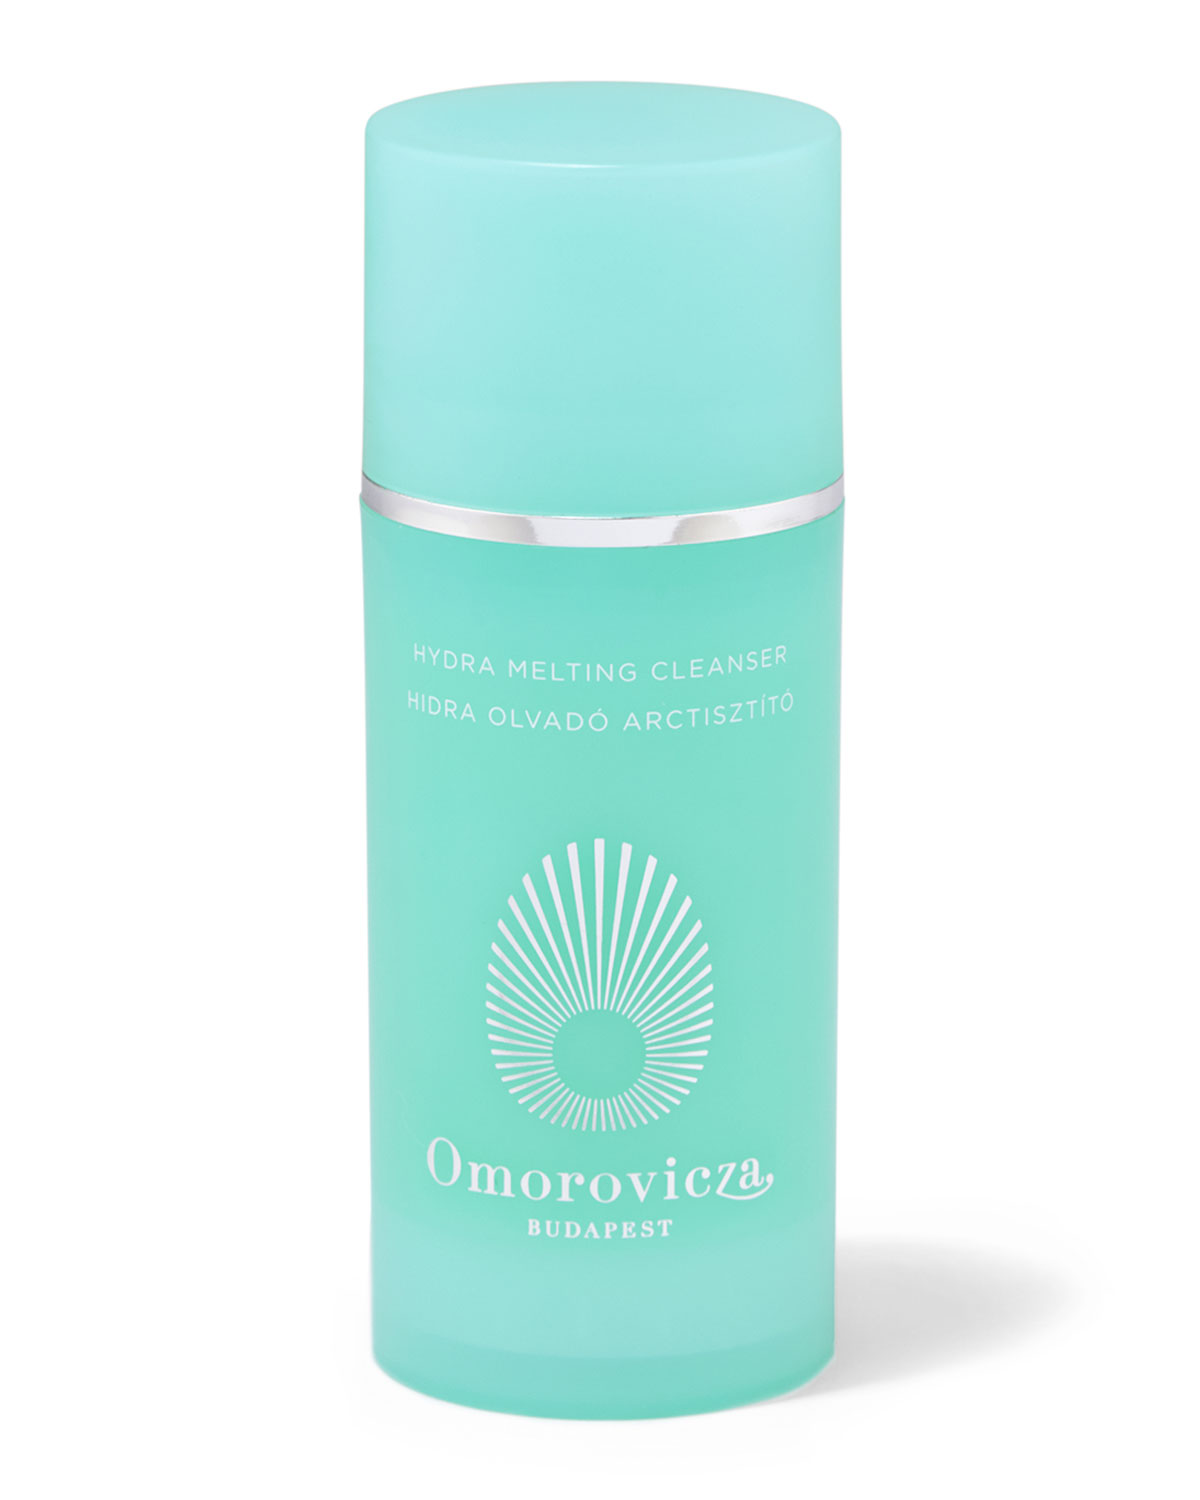 Omorovicza HYDRA MELTING CLEANSER, 3.4 OZ./ 100 ML